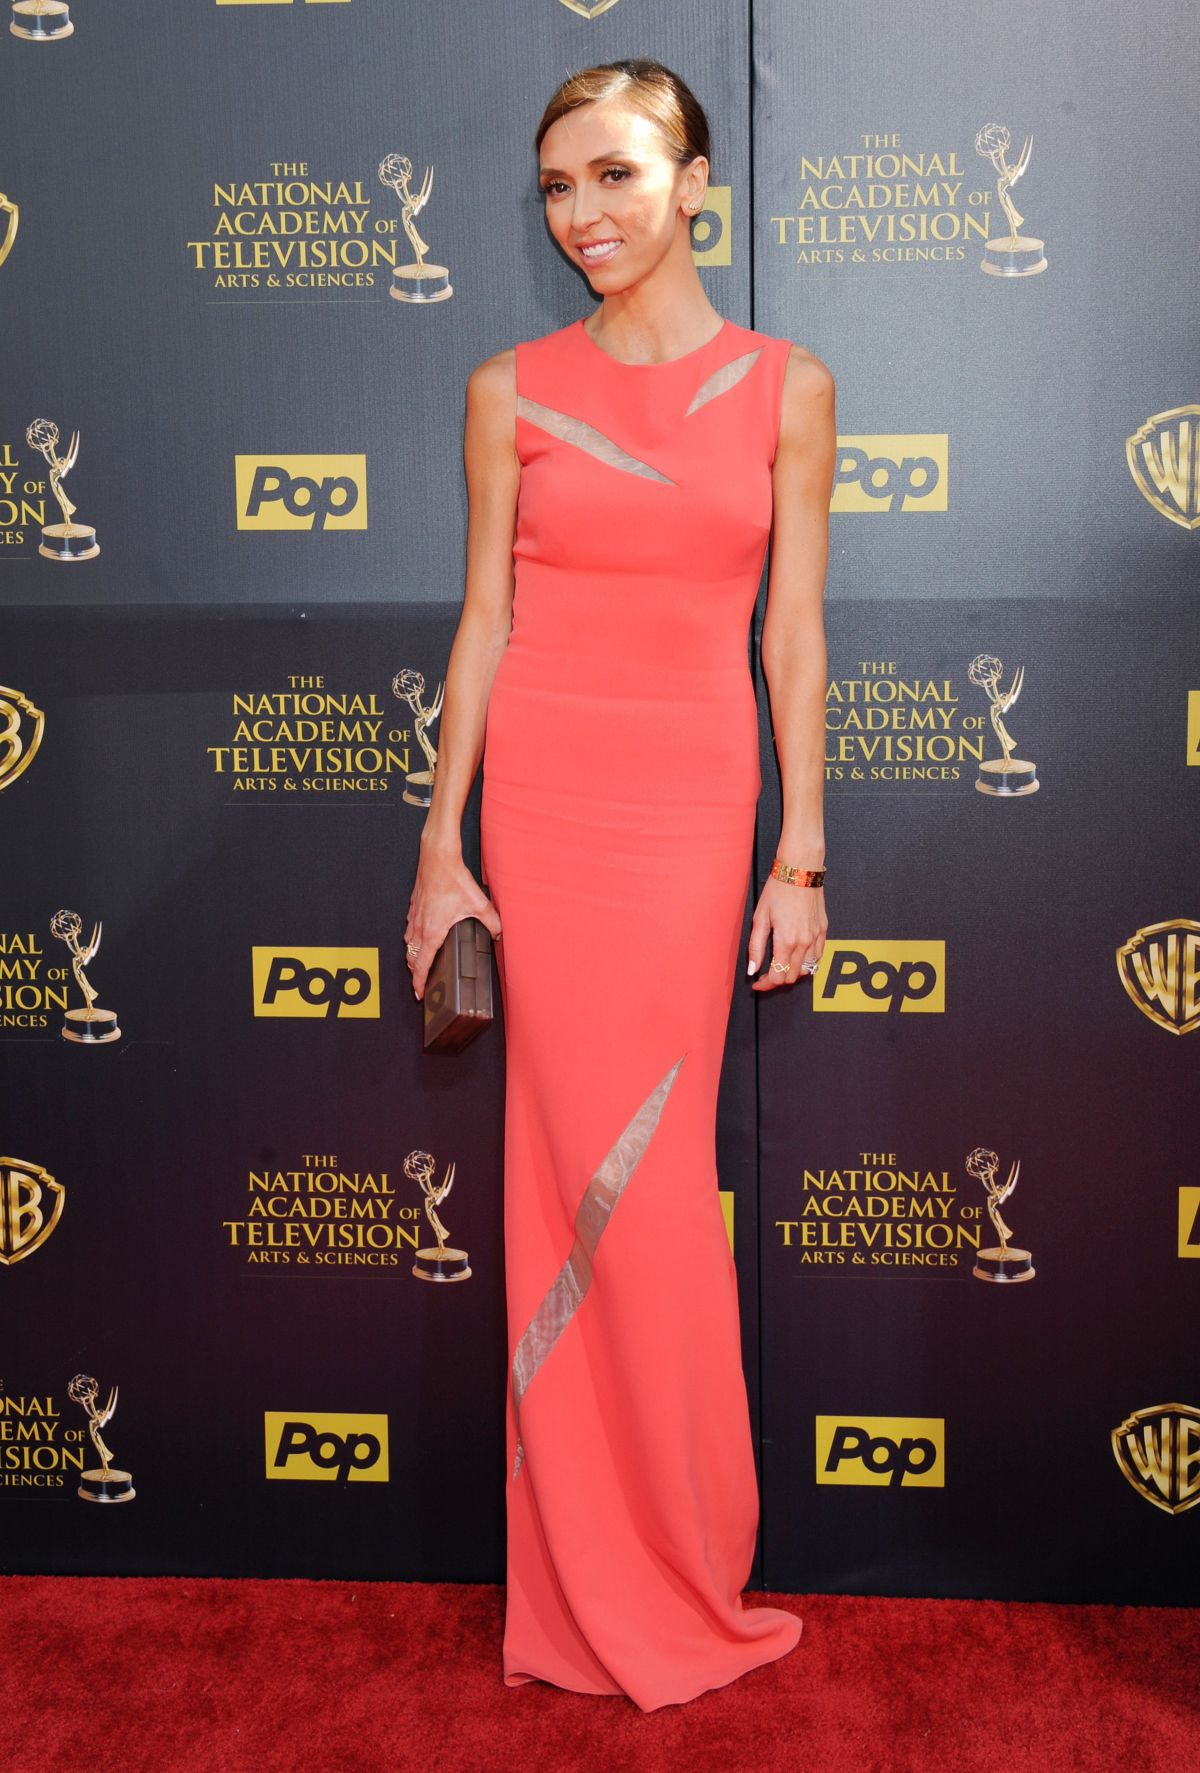 GIULIANA RANCIC at 2015 Daytime Emmy Awards in Burbank